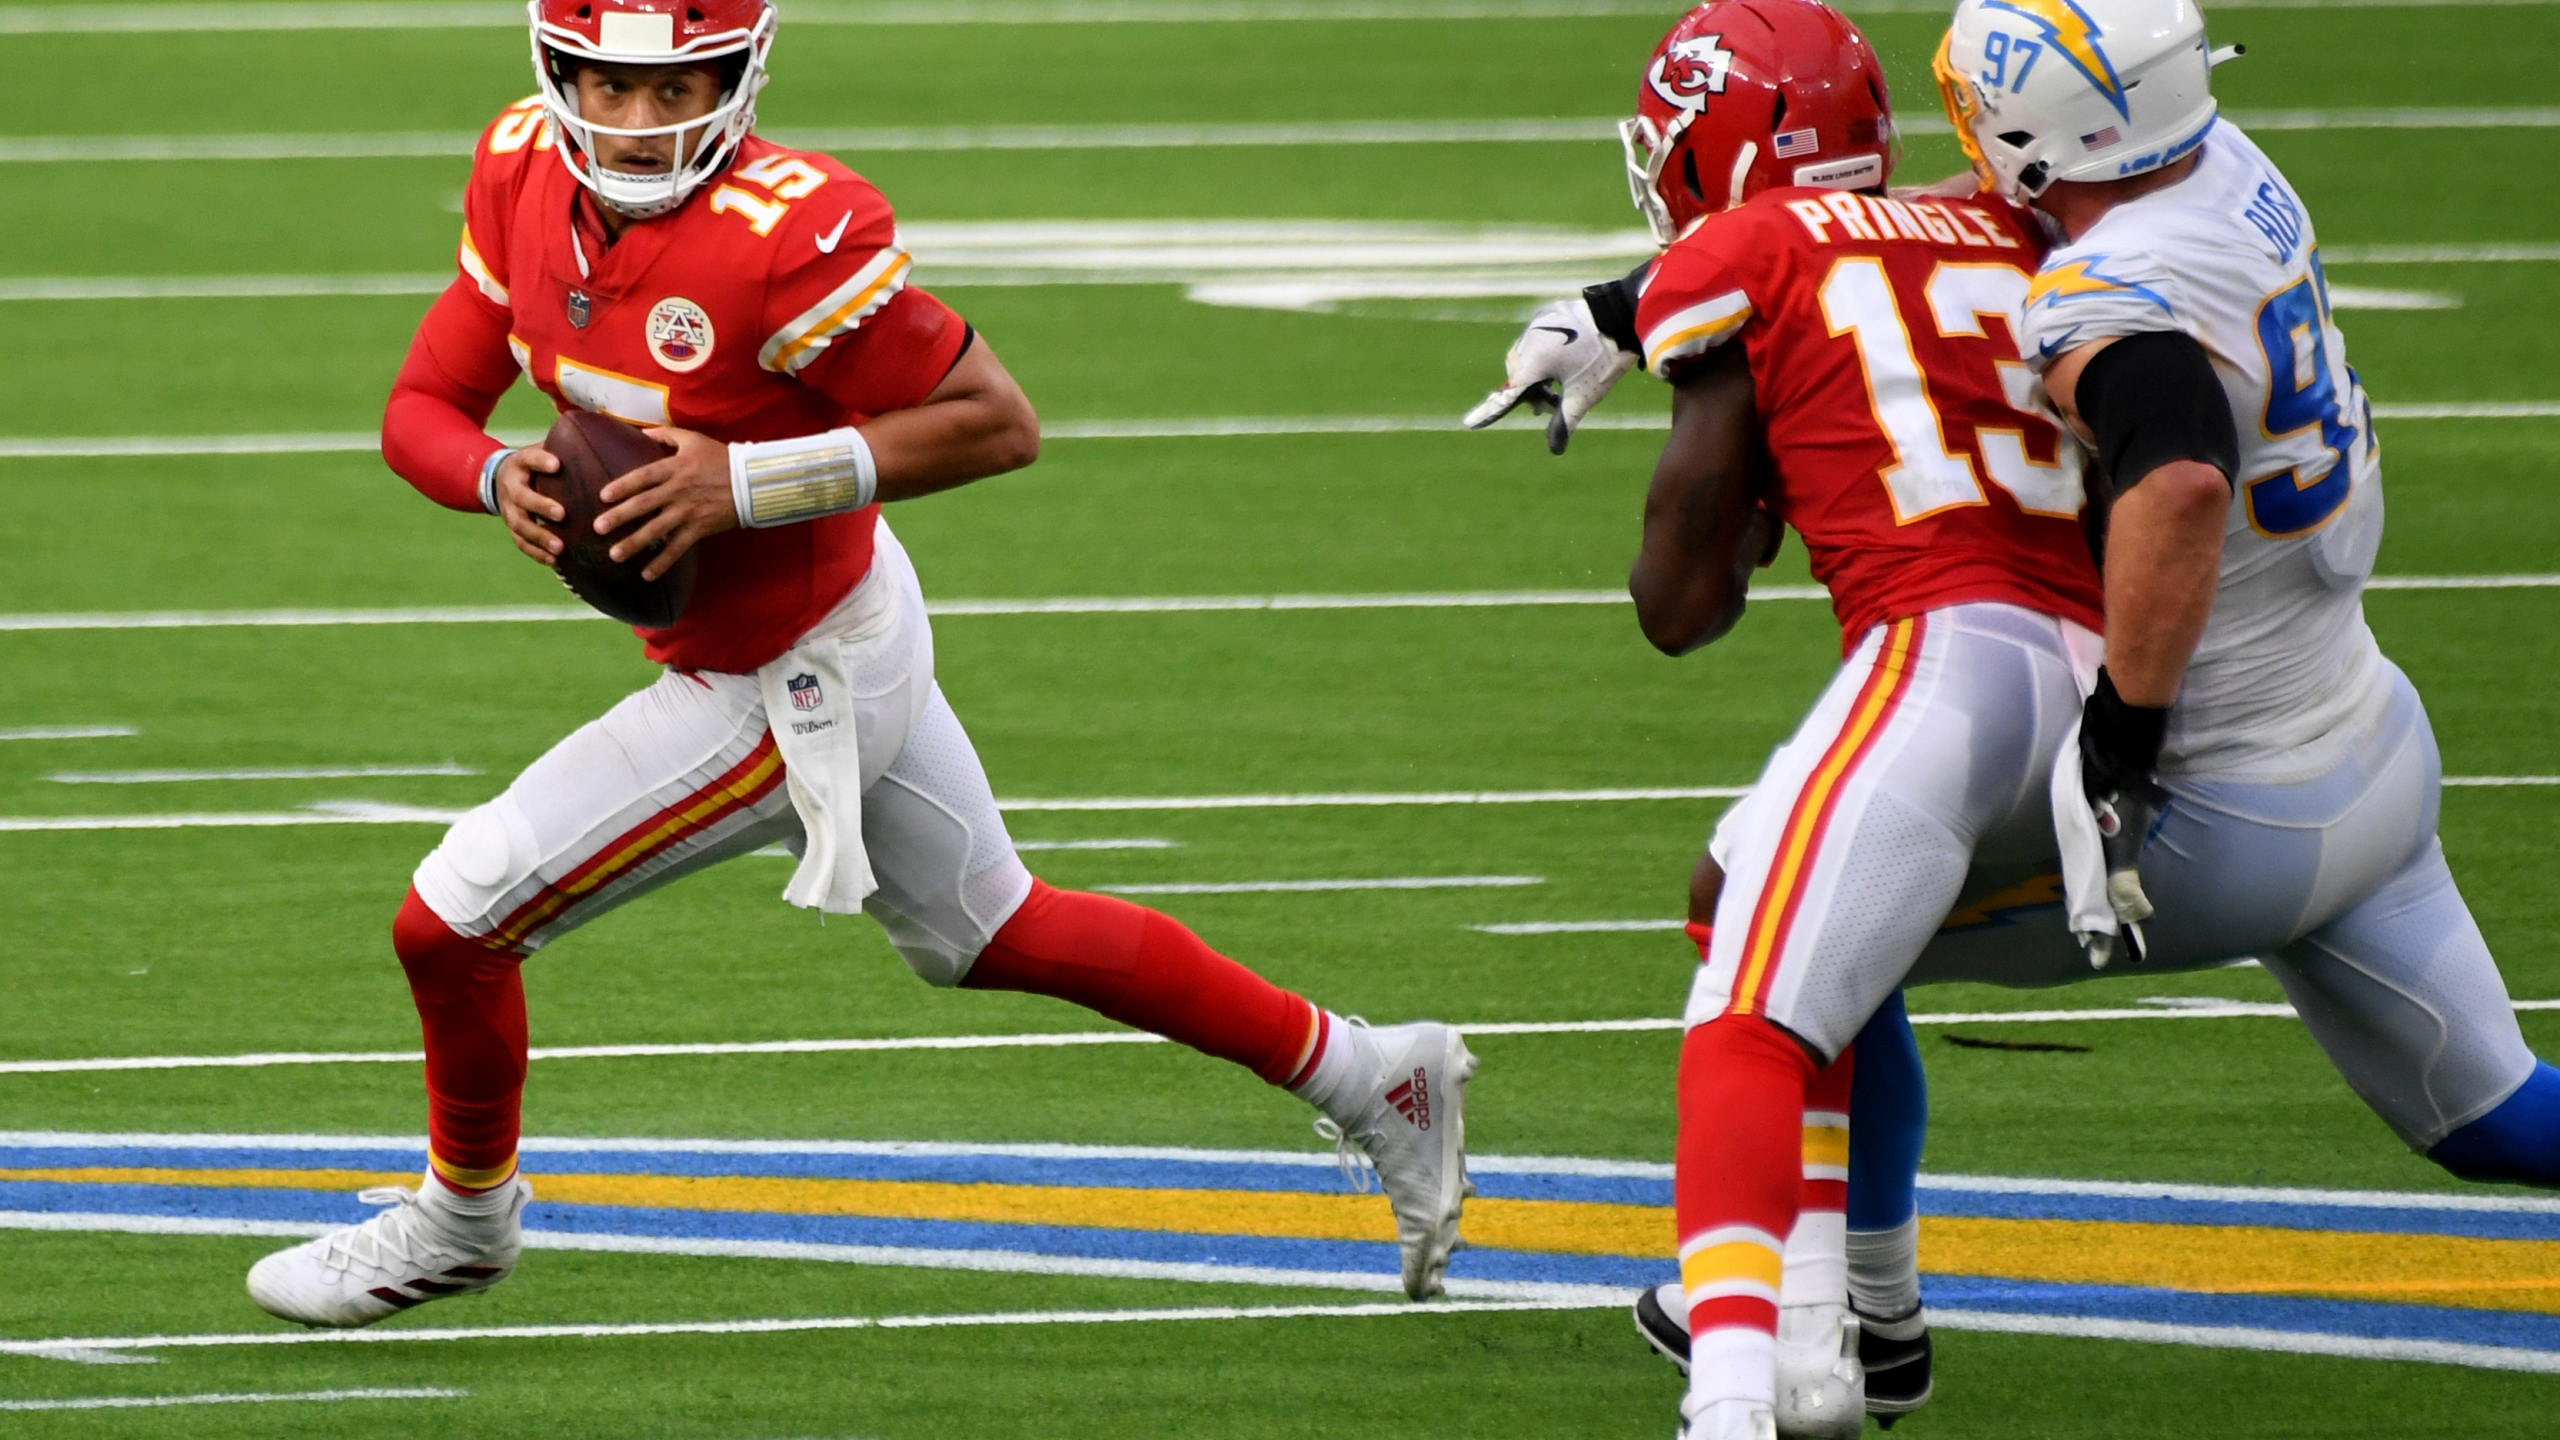 Pat Mahomes Stats Halloween 2020 Patrick Mahomes shows off his scrambling ability – WAVY.com